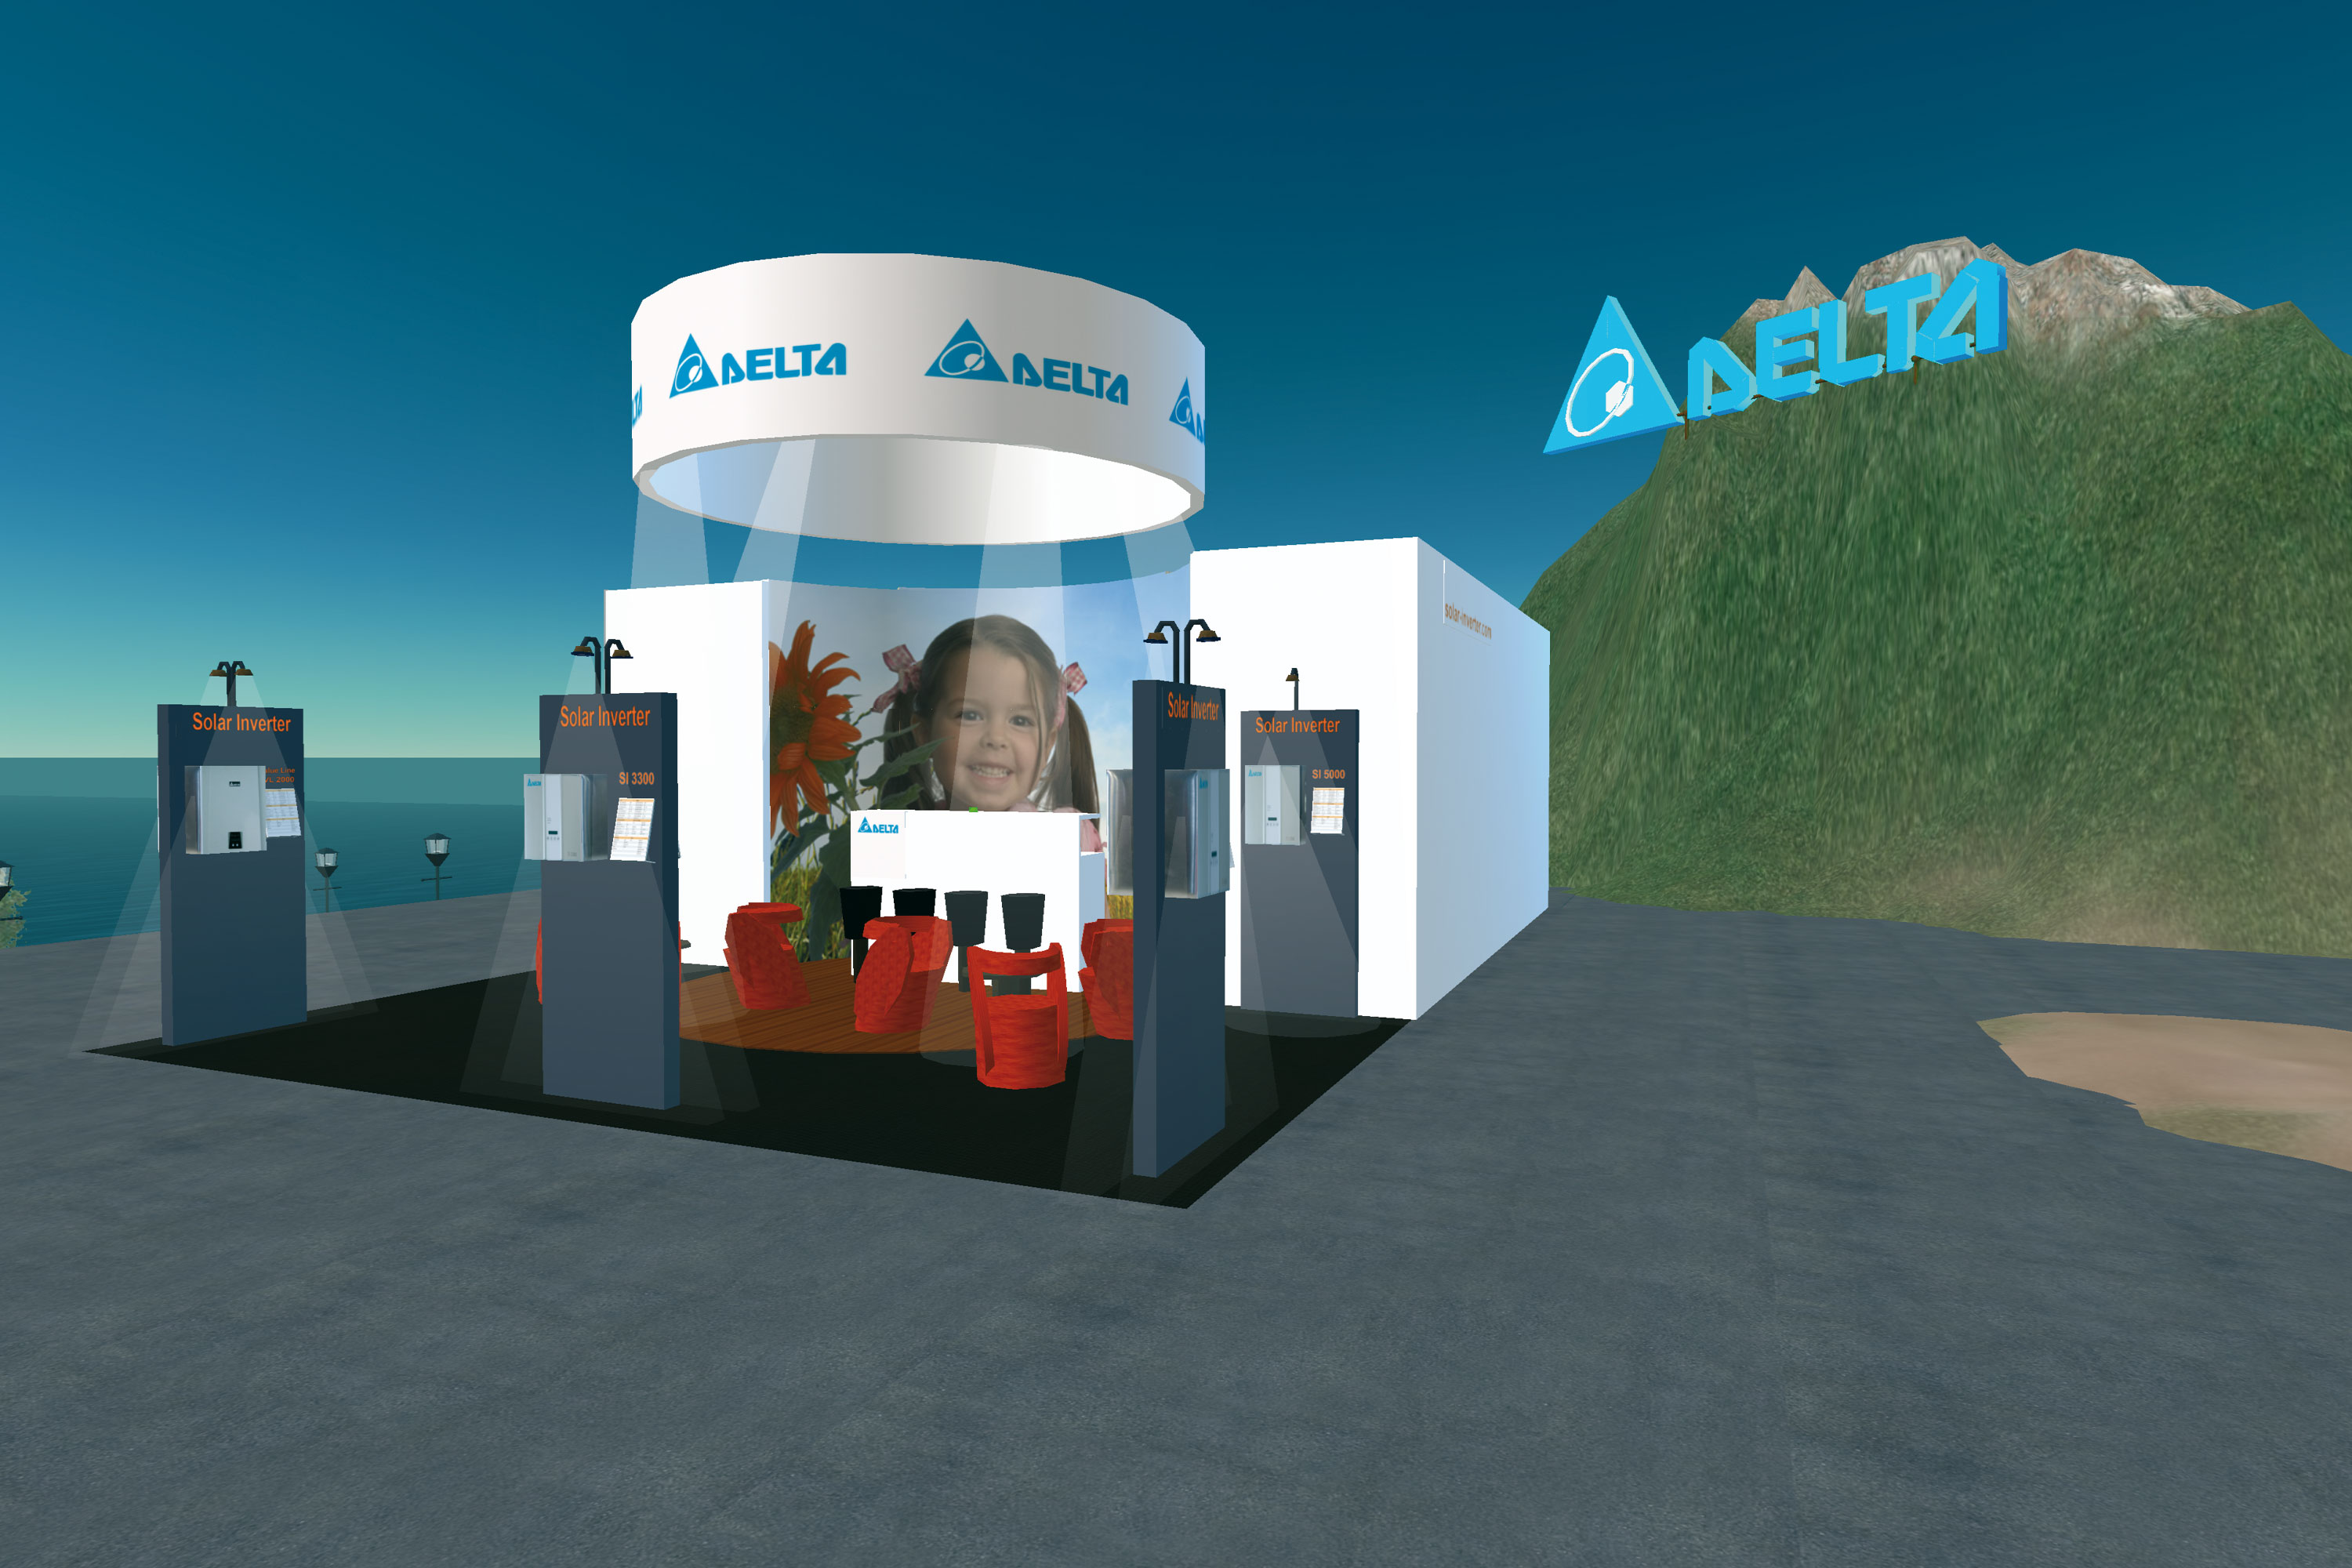 delta in Second Life